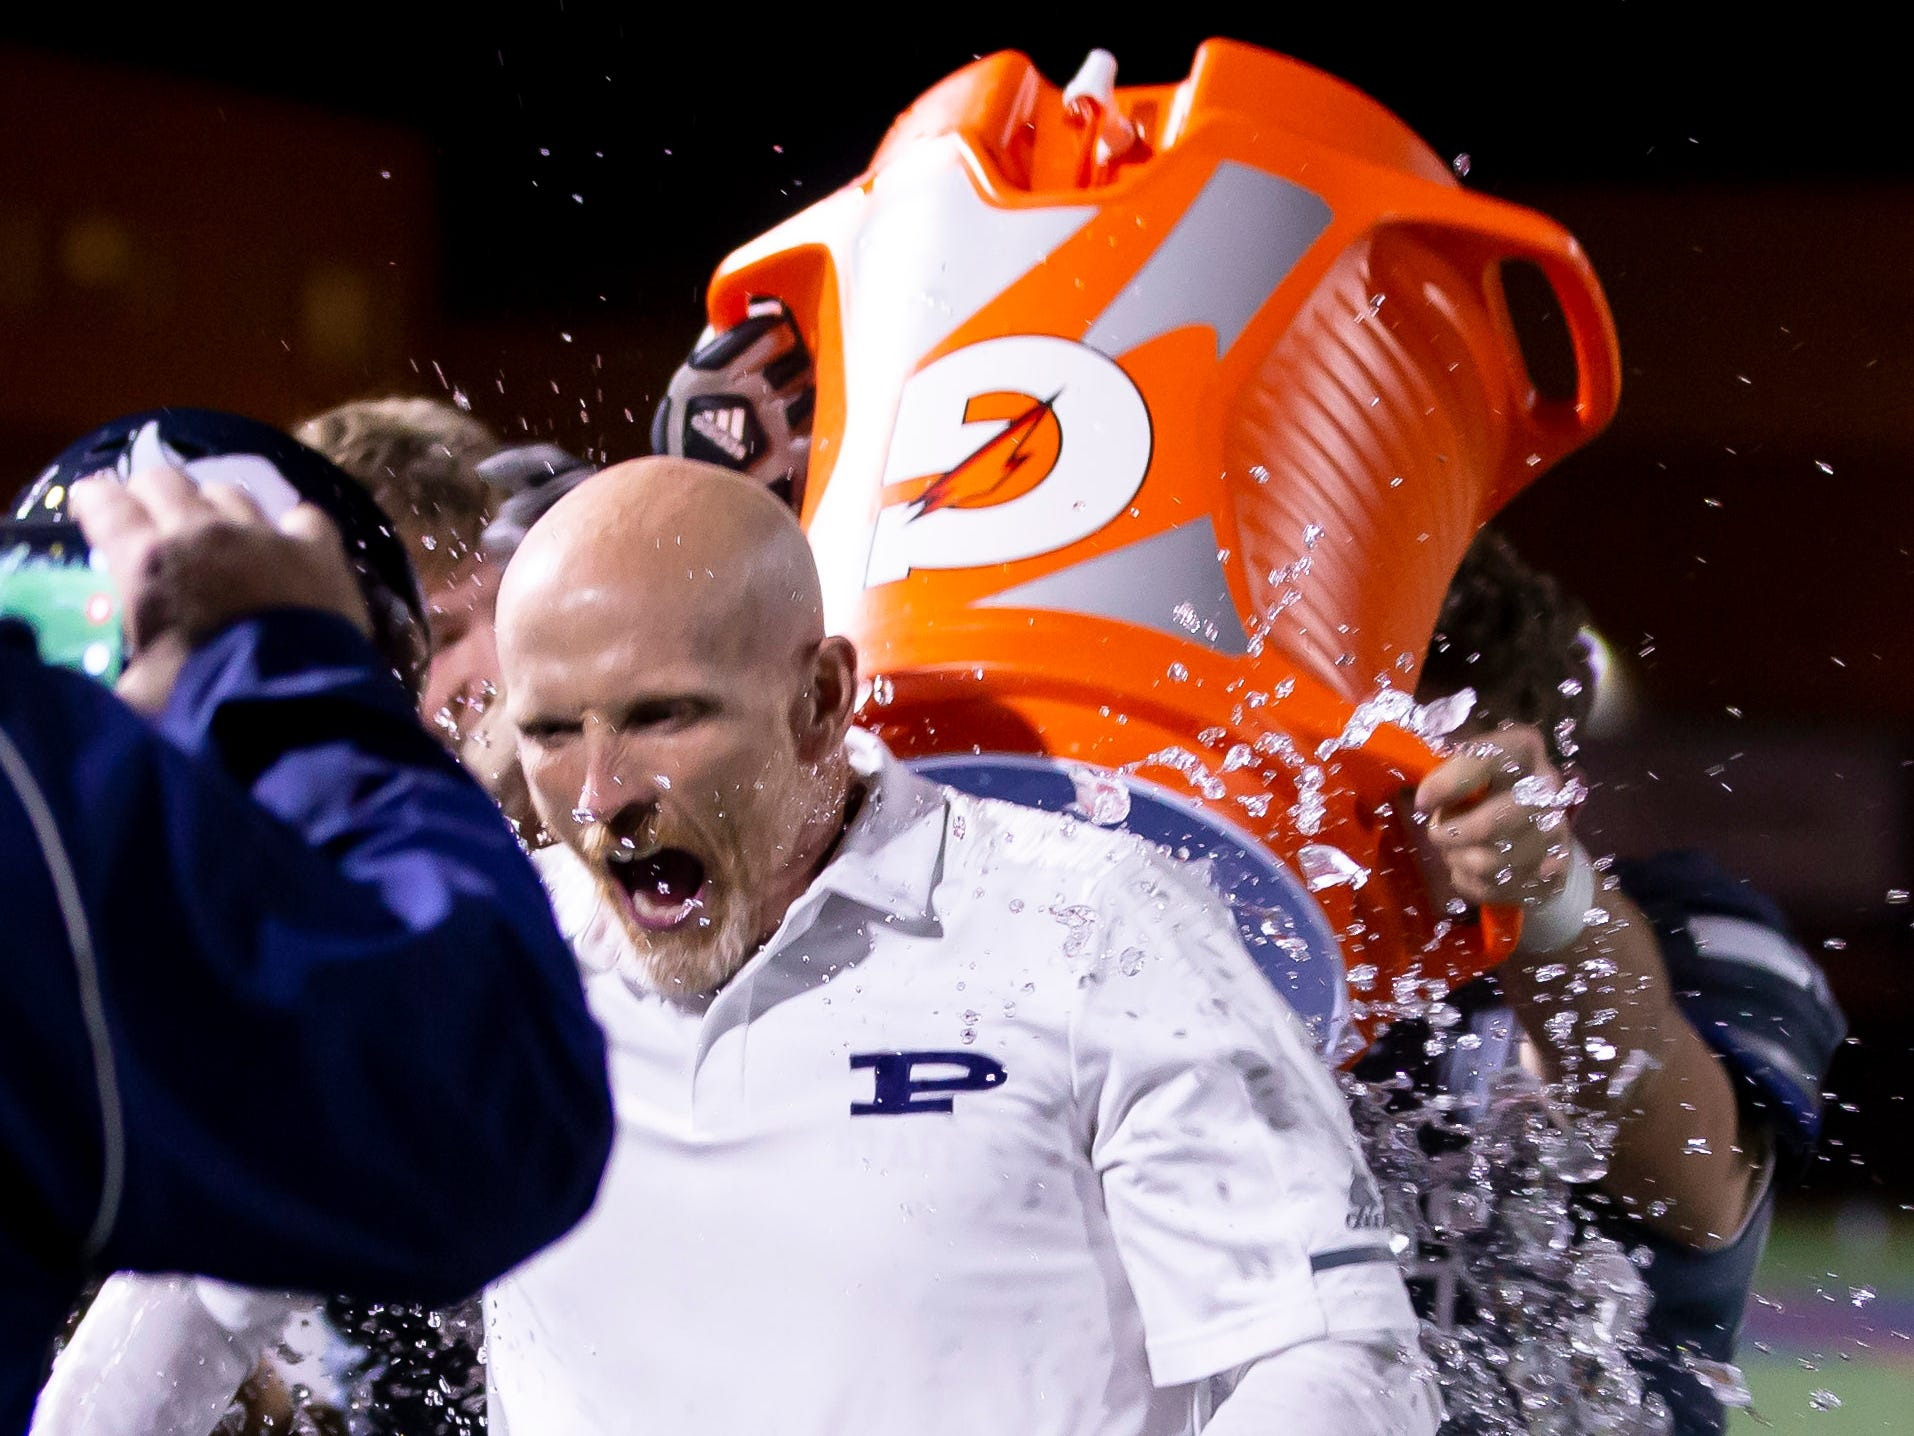 Head coach Dana Zupke of the Pinnacle Pioneers is ducked with ice water during the playoff game against the Red Mountain Mountain Lions at Pinnacle High School on Friday, November 9, 2018 in Phoenix, Arizona. #azhsfb